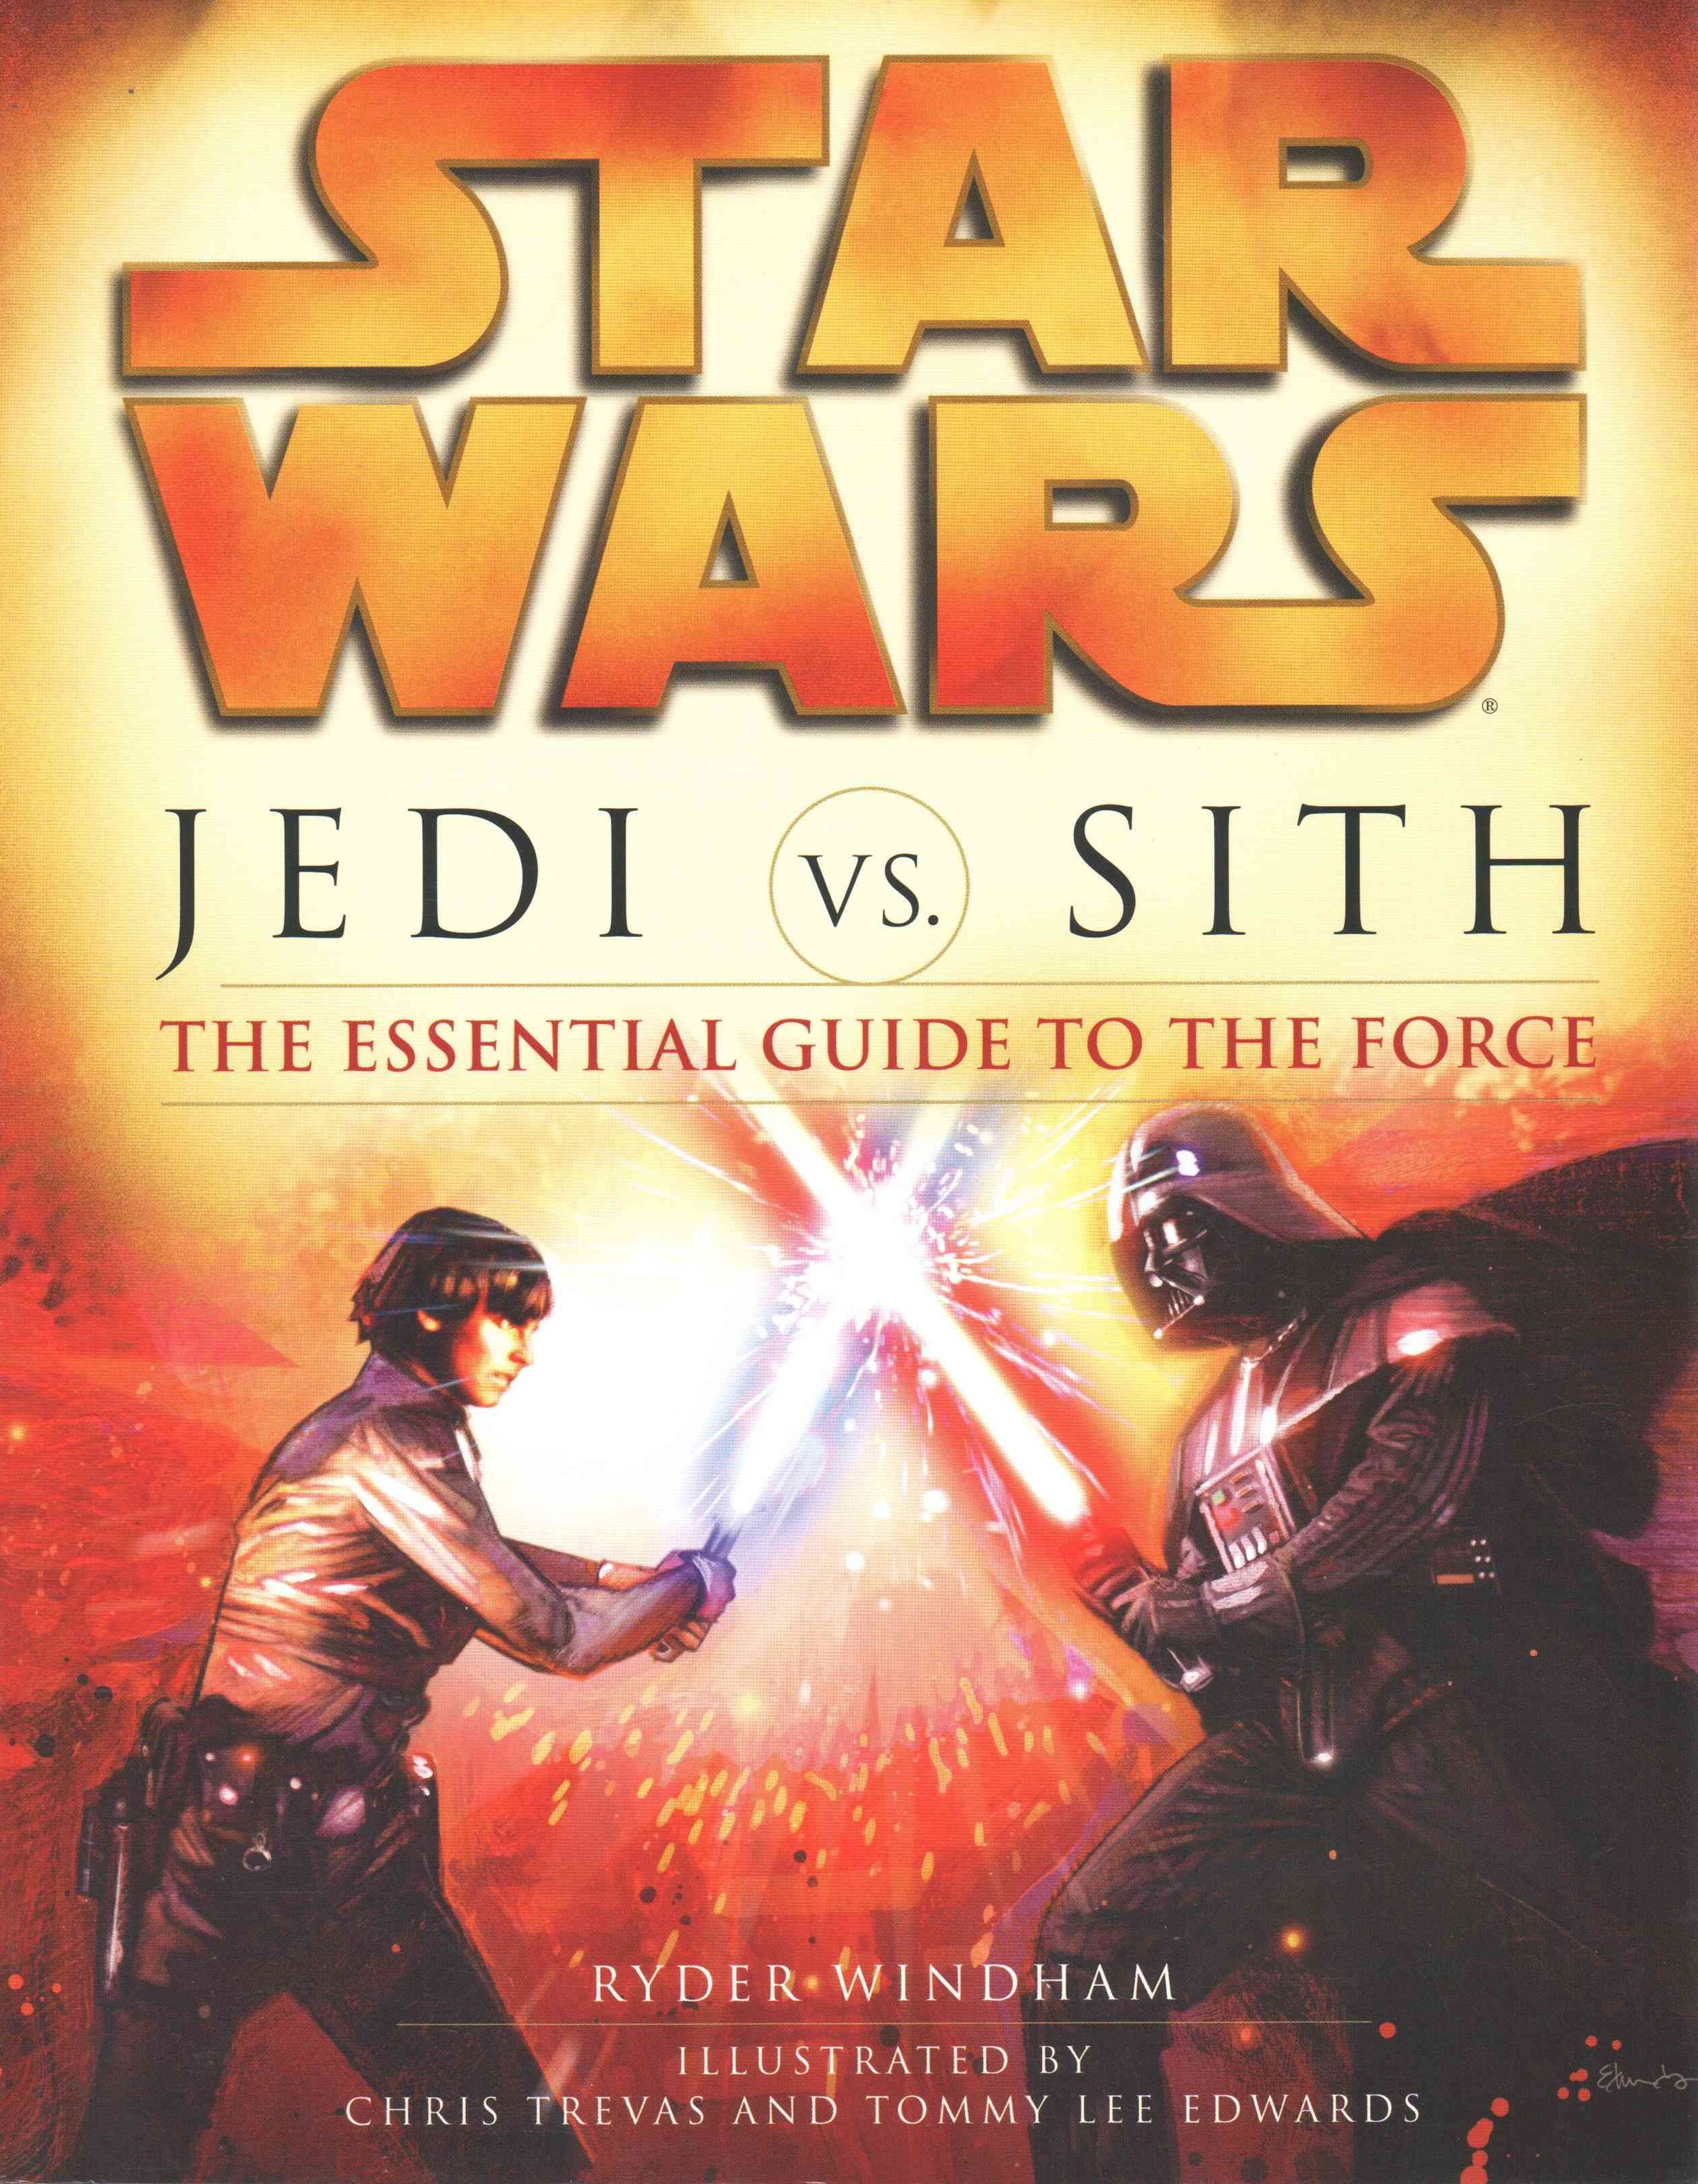 Star Wars - Jedi vs. Sith